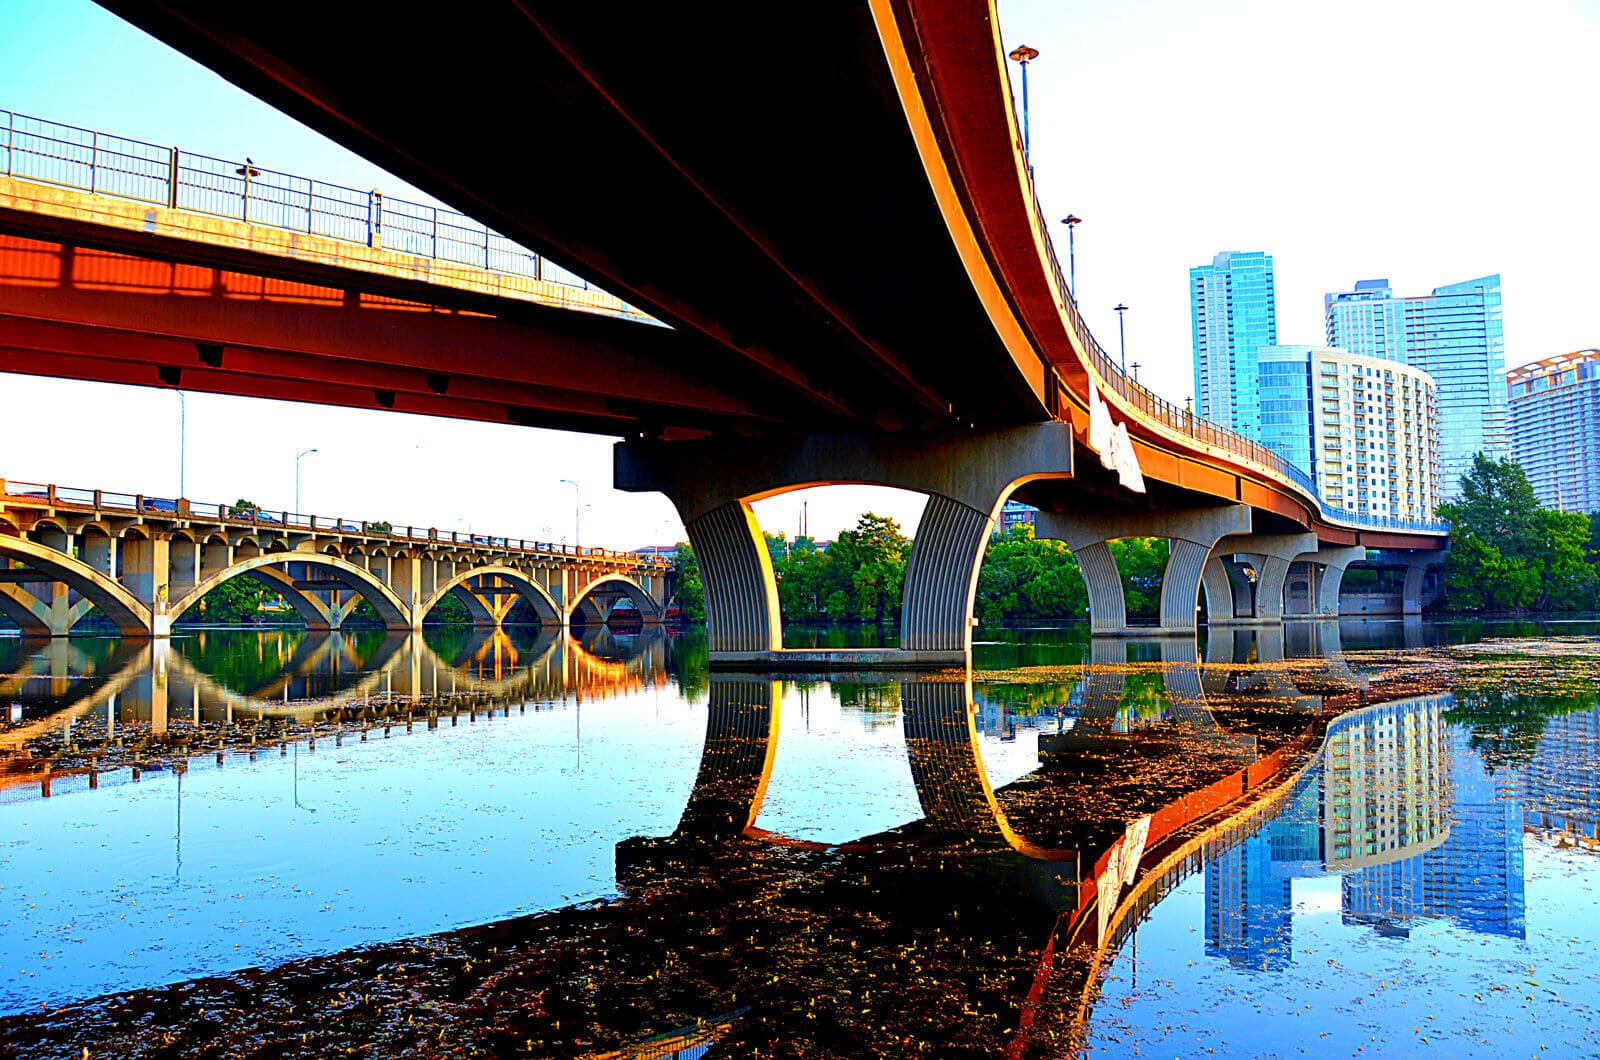 Image from underneath the one the bridges in Austin looking towards downtown.